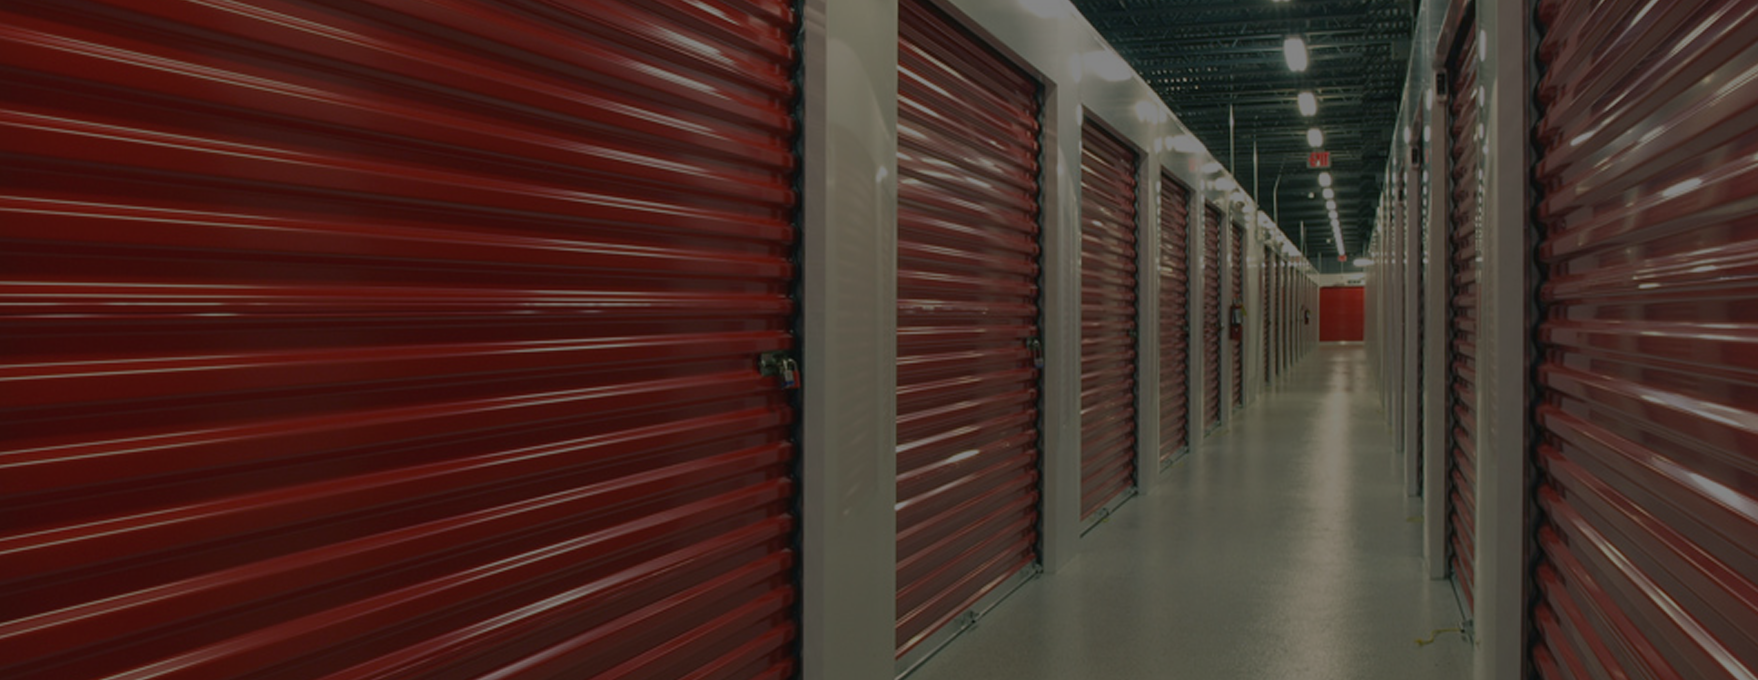 background image of roller shutters